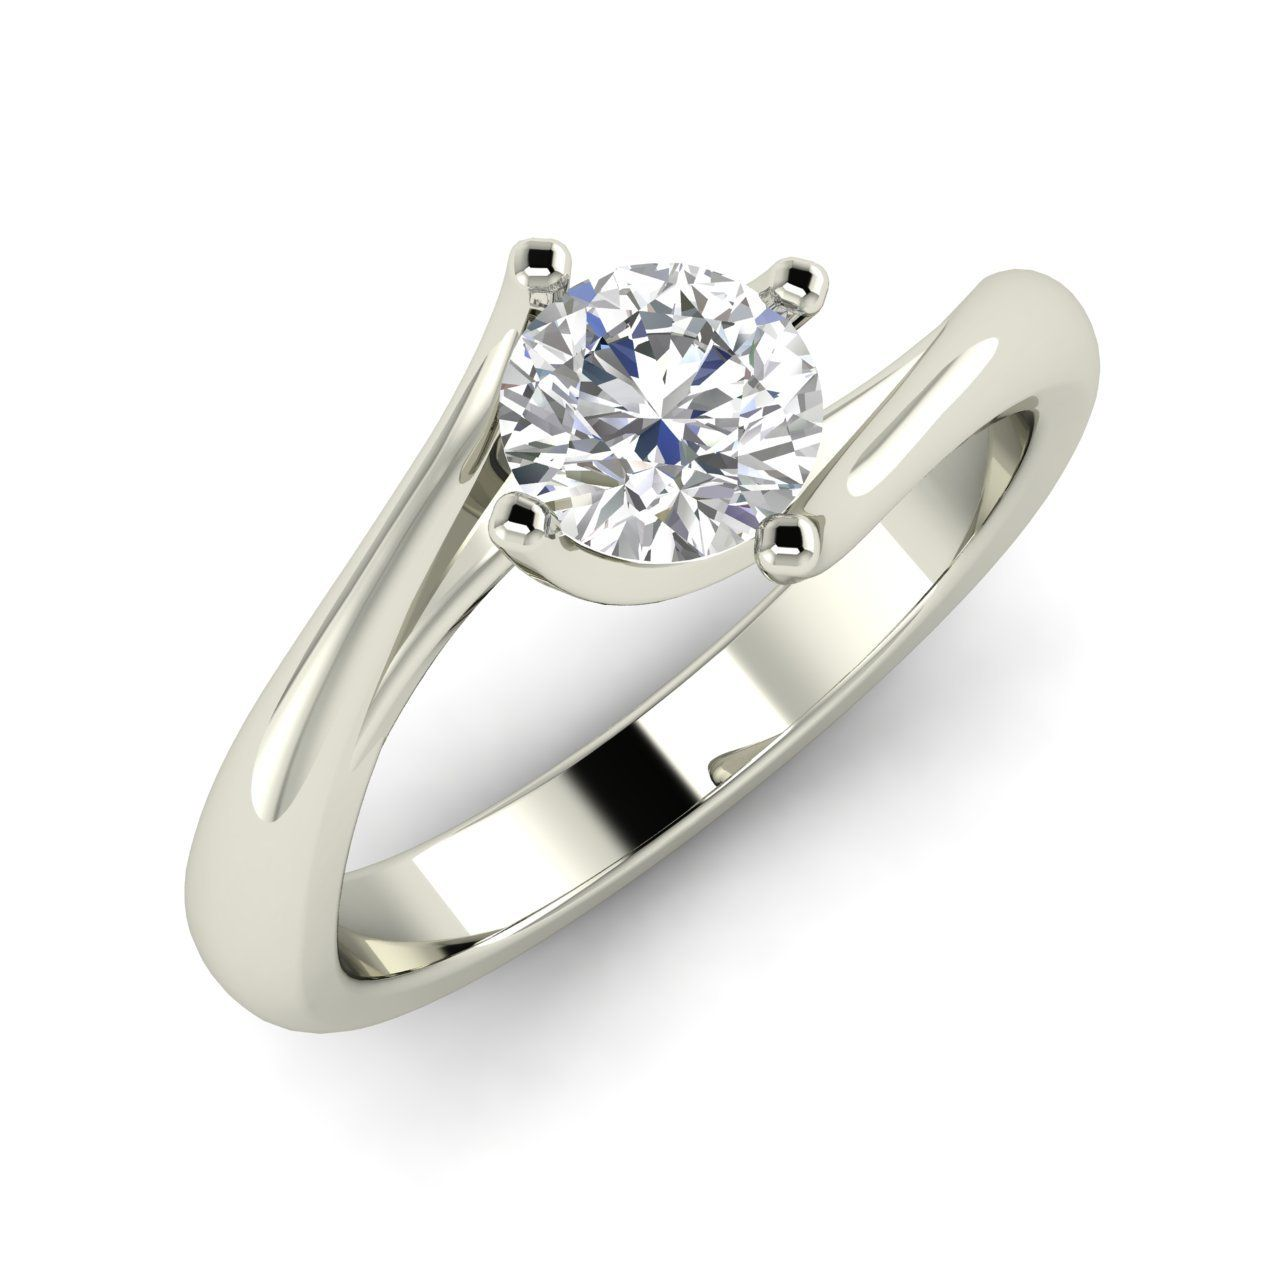 57 Ct Natural White Sapphire Solitaire Engagement Ring In Solid 14k White  Gold  Genuine